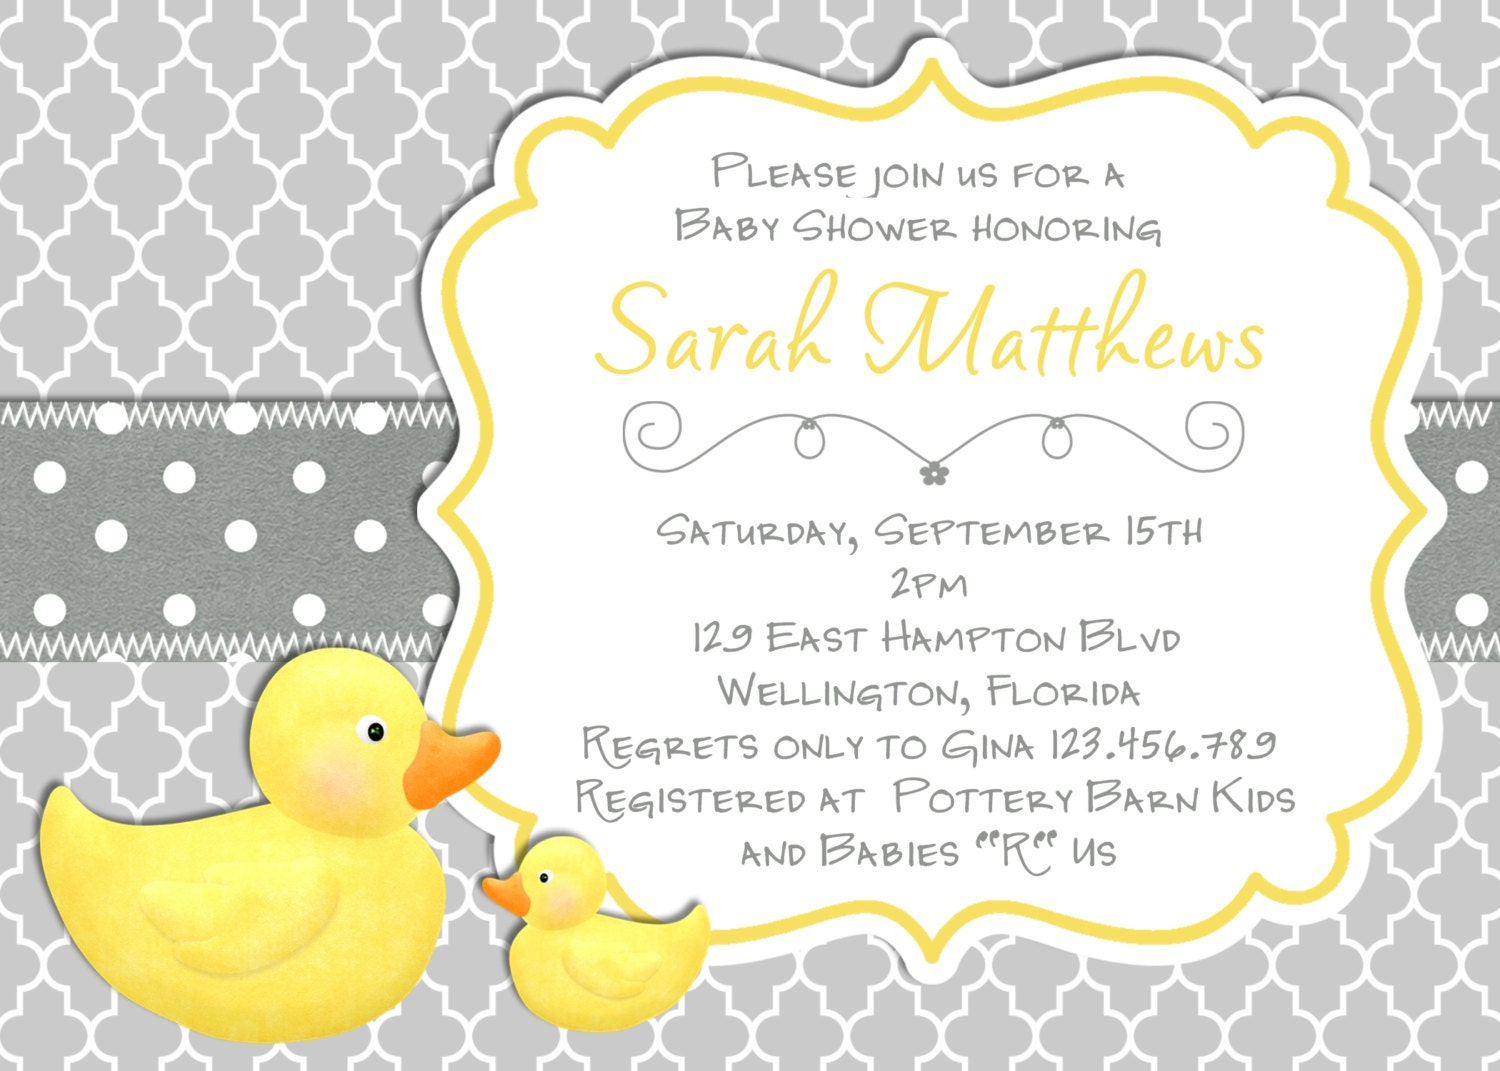 Baby Shower Images Yellow ~ Modern rubber duck baby shower invitation trefoil yellow gray